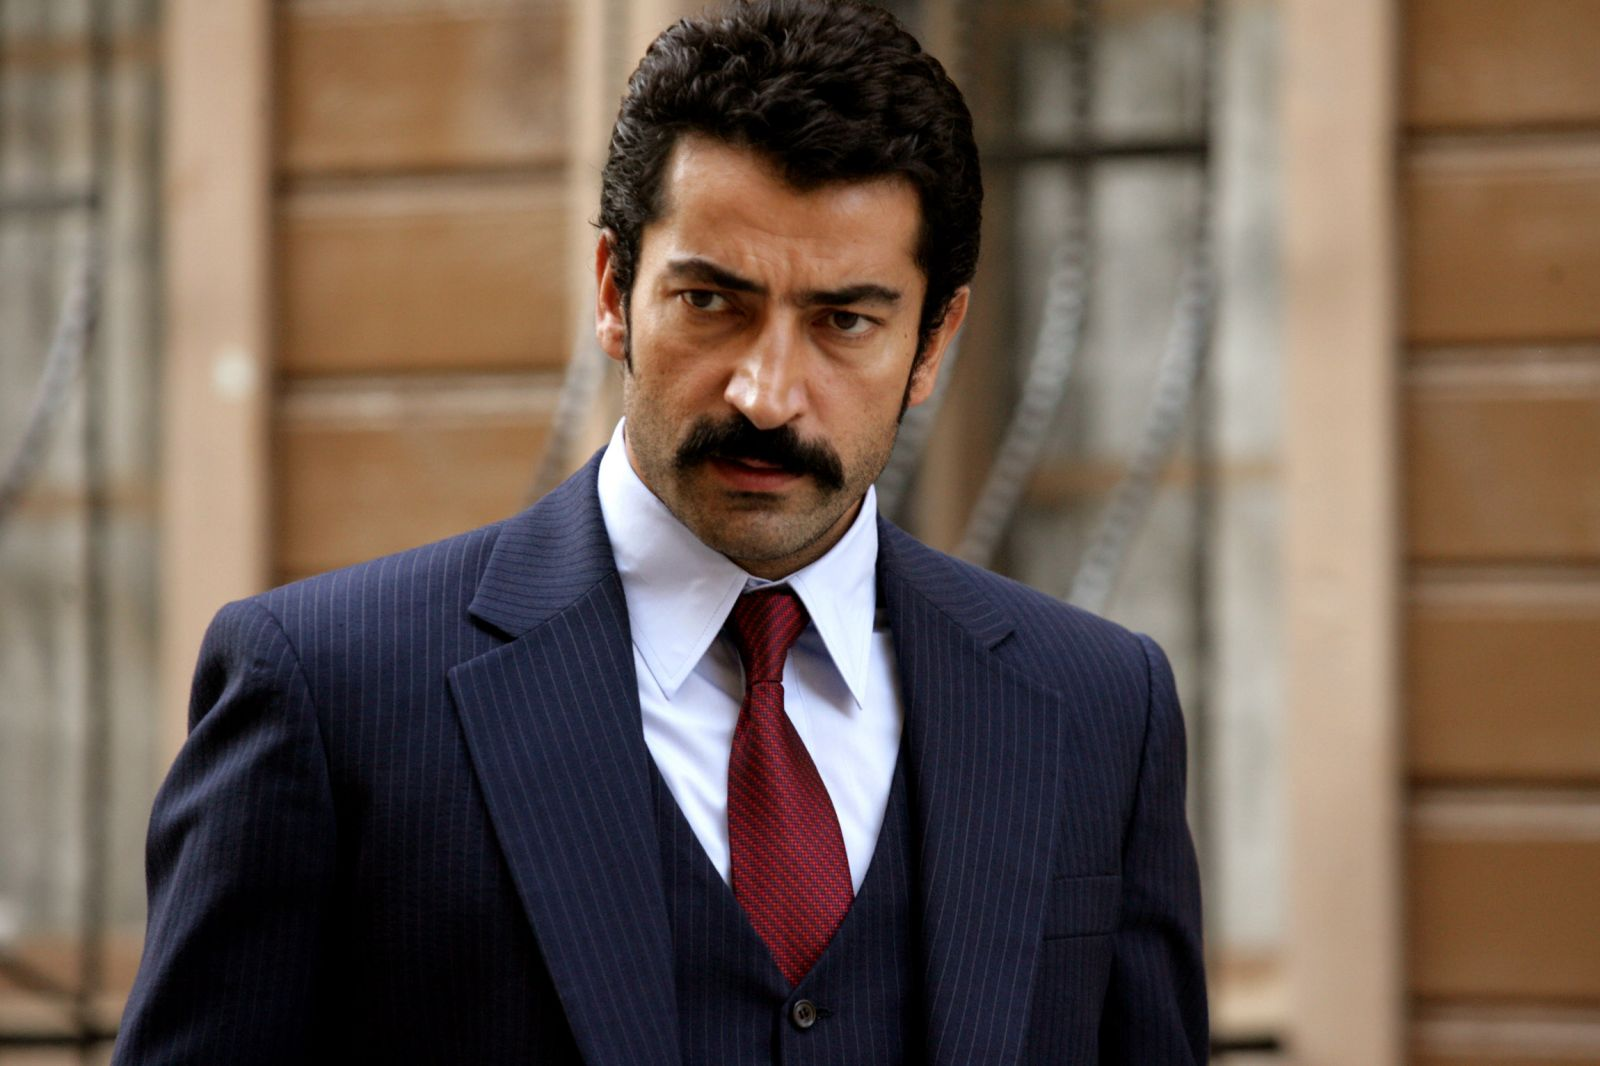 The 43-year old son of father Mustafa İmirzalıoğlu and mother Yıldız İmirzalıoğlu, 193 cm tall Kenan Imirzalioglu in 2018 photo